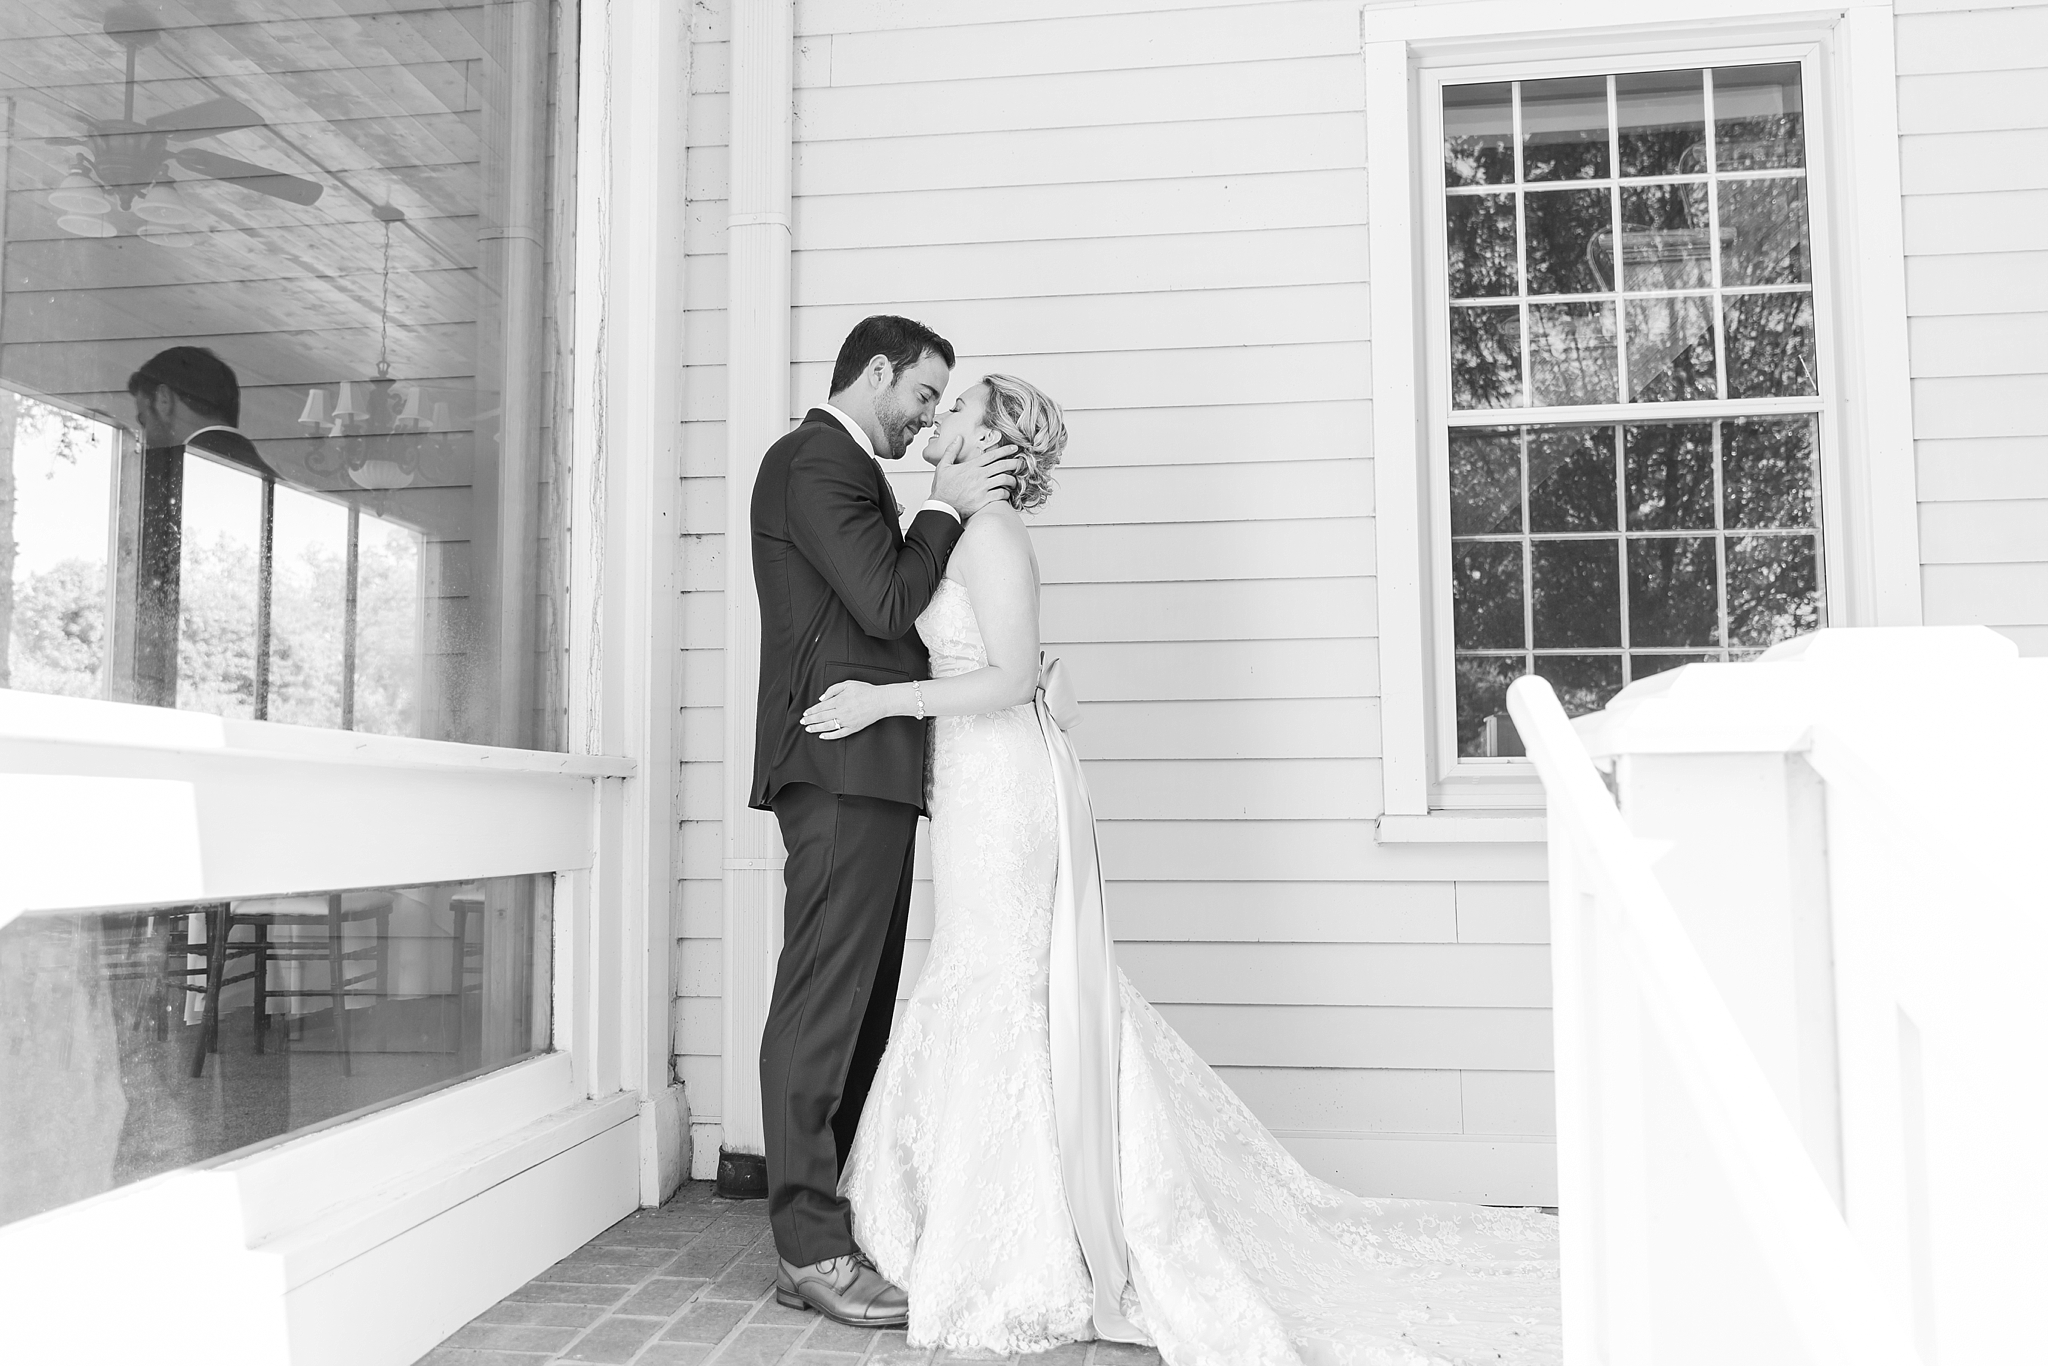 fun-candid-laid-back-wedding-photos-at-wellers-carriage-house-in-saline-michigan-and-at-the-eagle-crest-golf-resort-by-courtney-carolyn-photography_0057.jpg